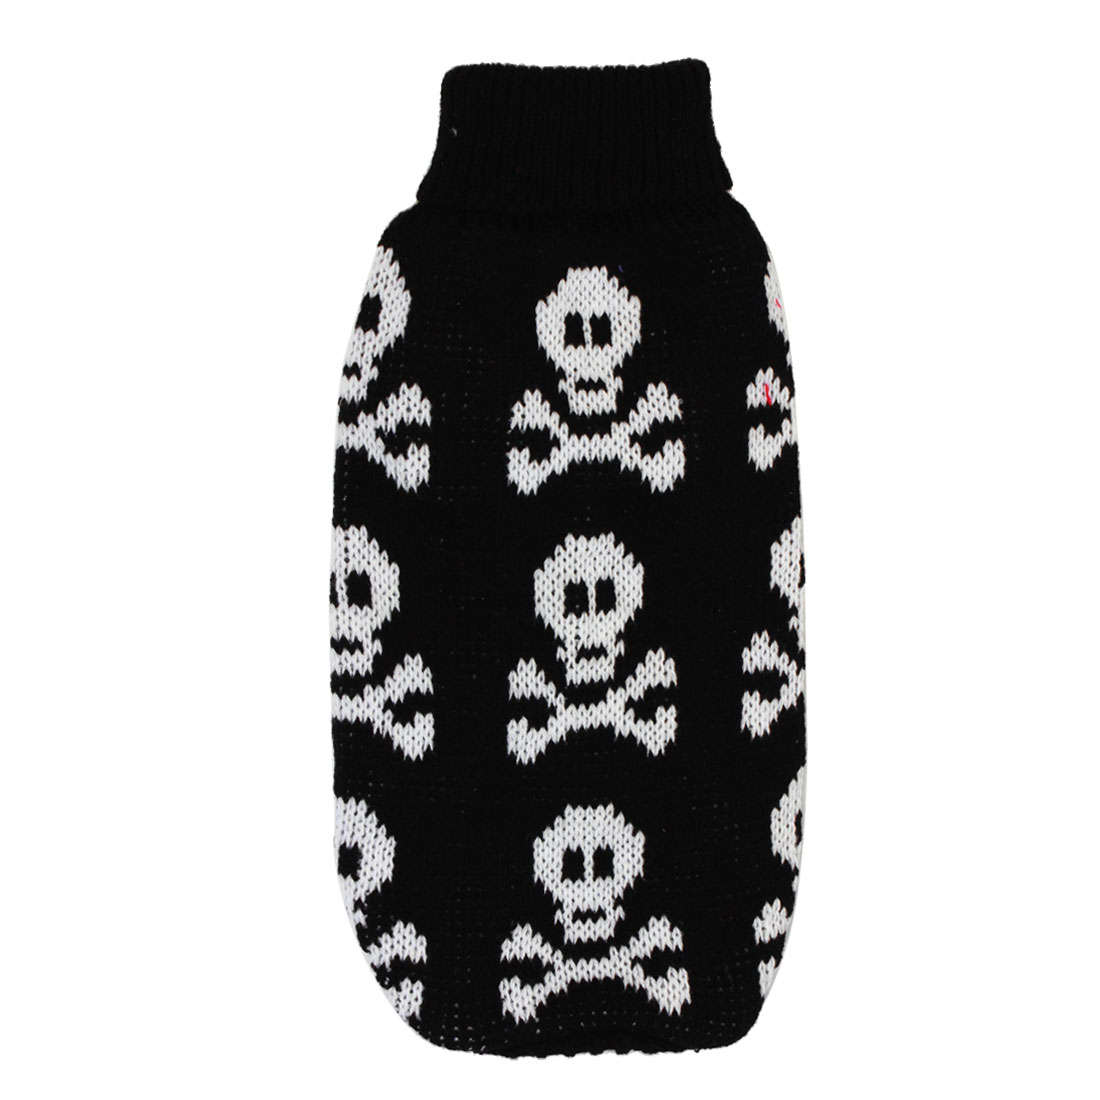 Pet Dog Chihuahua Ribbed Cuff Knitwear Turtleneck Apparel Coat Sweater Black White Size XS